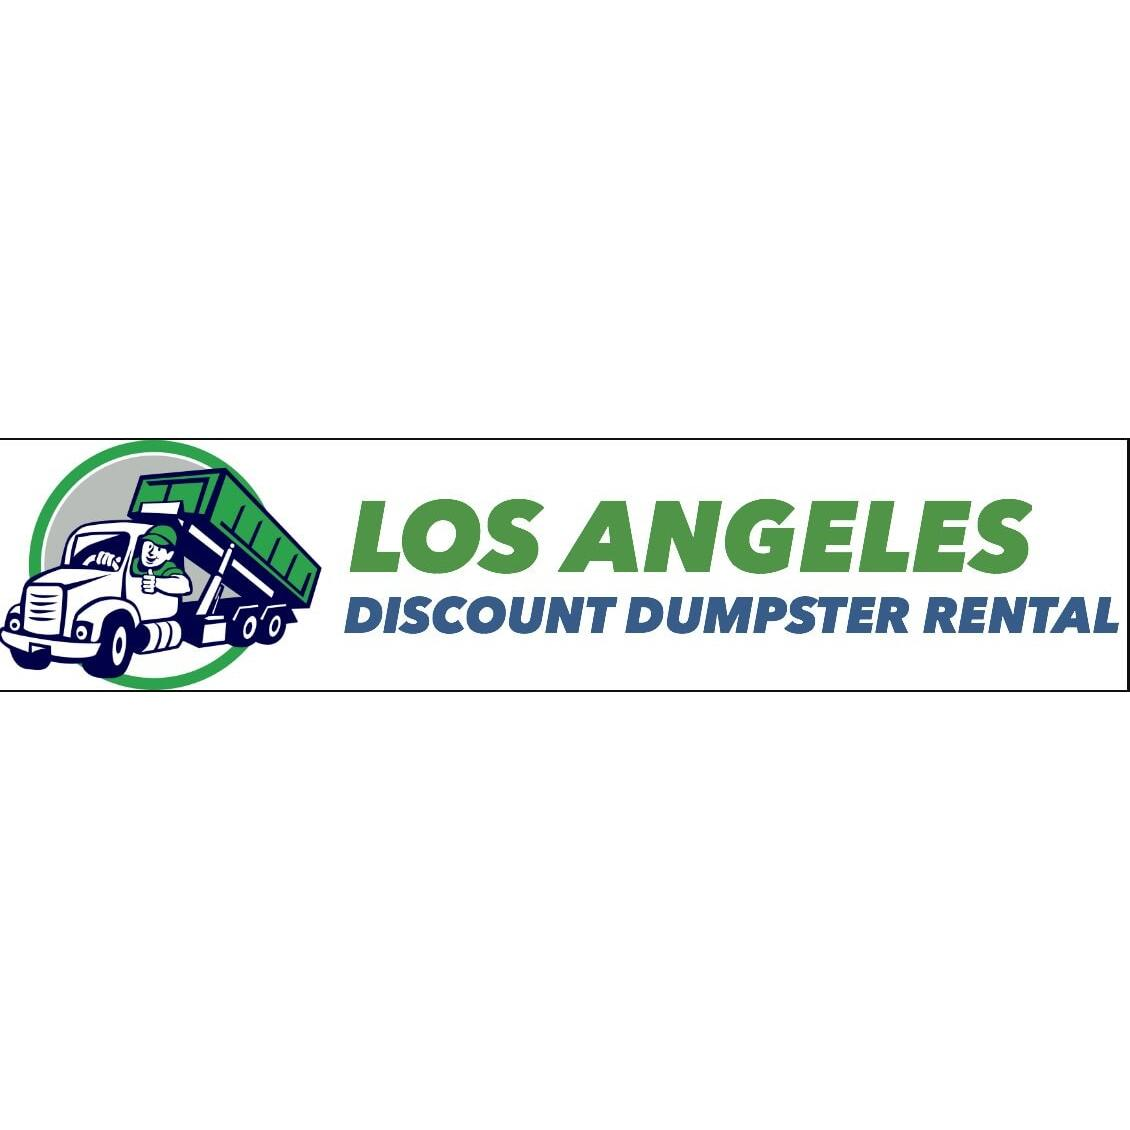 Discount Dumpster Rental Los Angeles